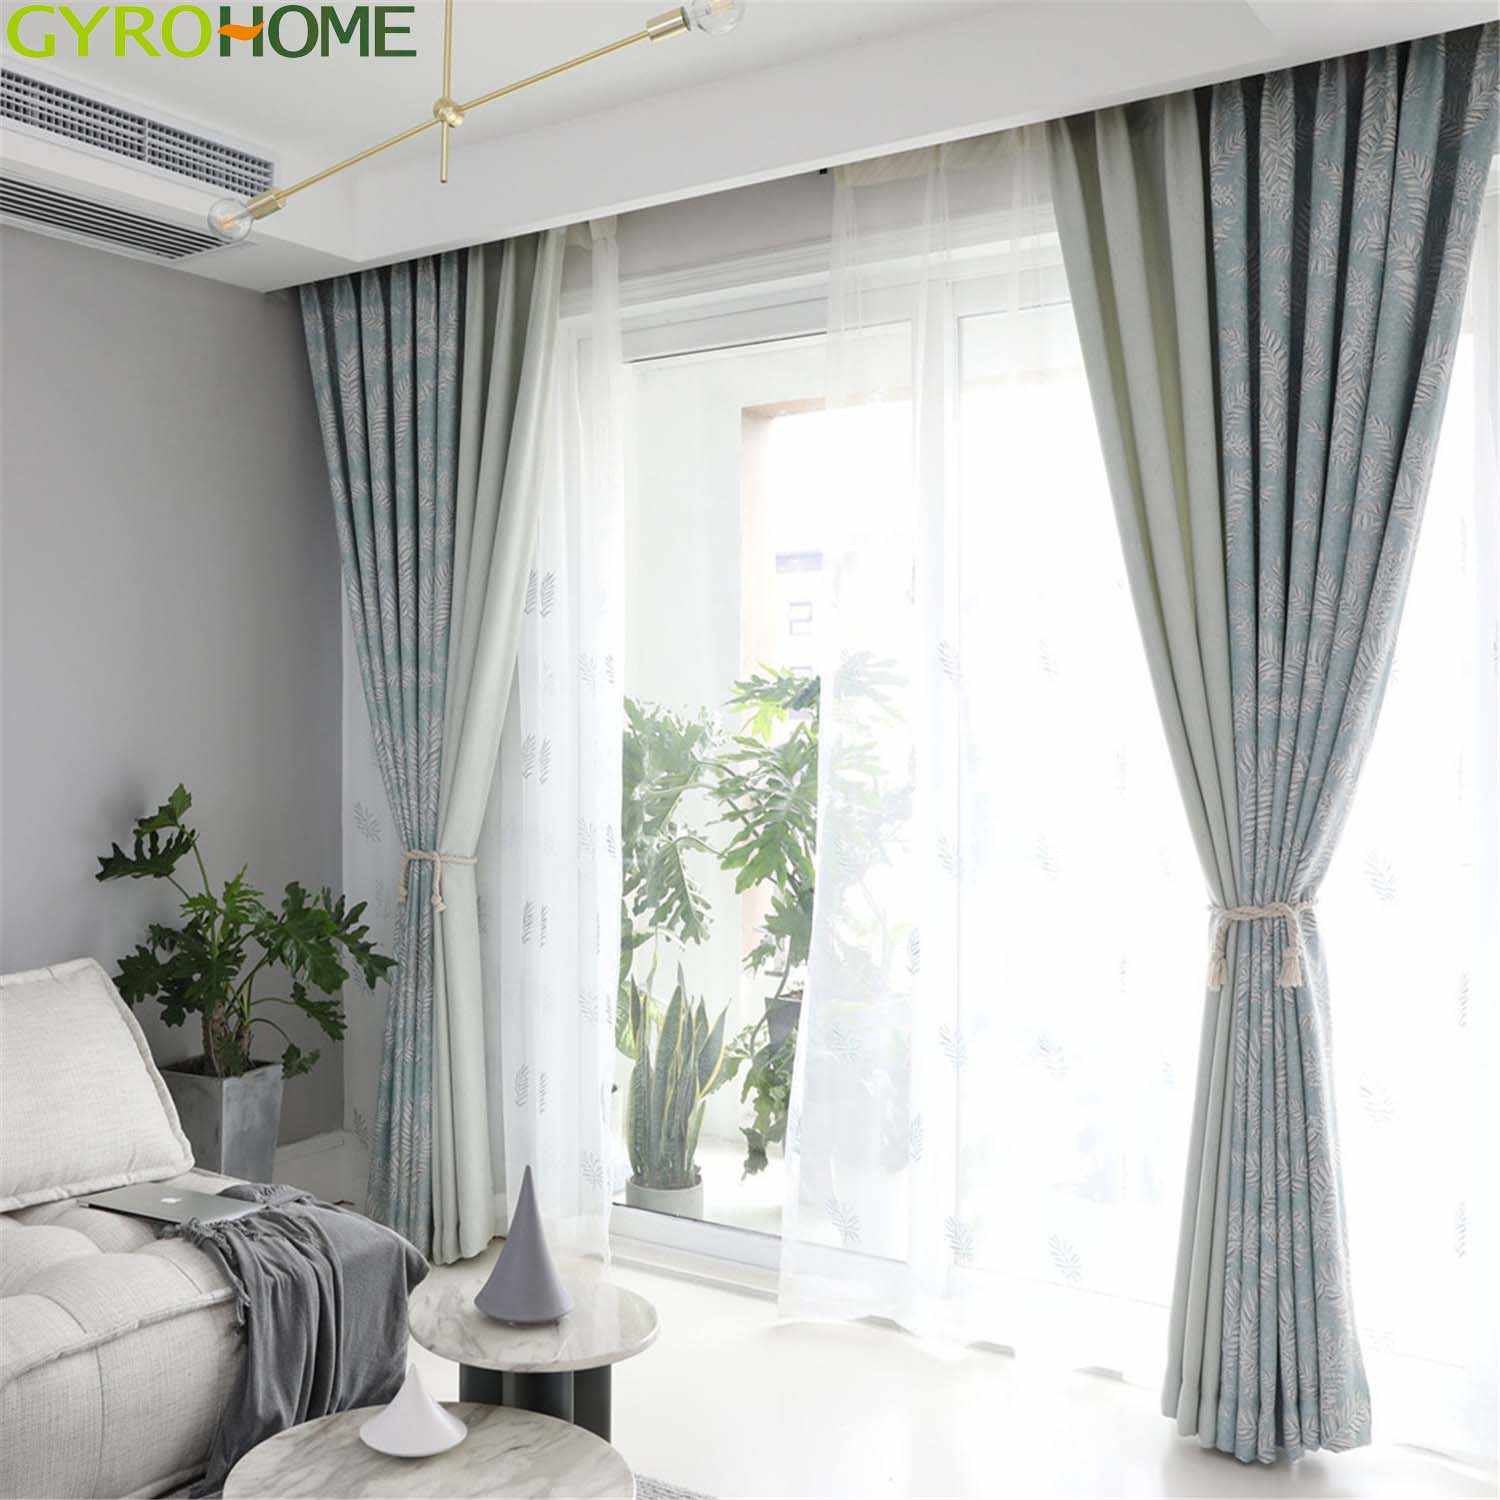 Light Blue Coffee Jacquard Curtains For Living Room Kitchen Bedroom Modern Simple Leaves Window Drapes Curtains Aliexpress